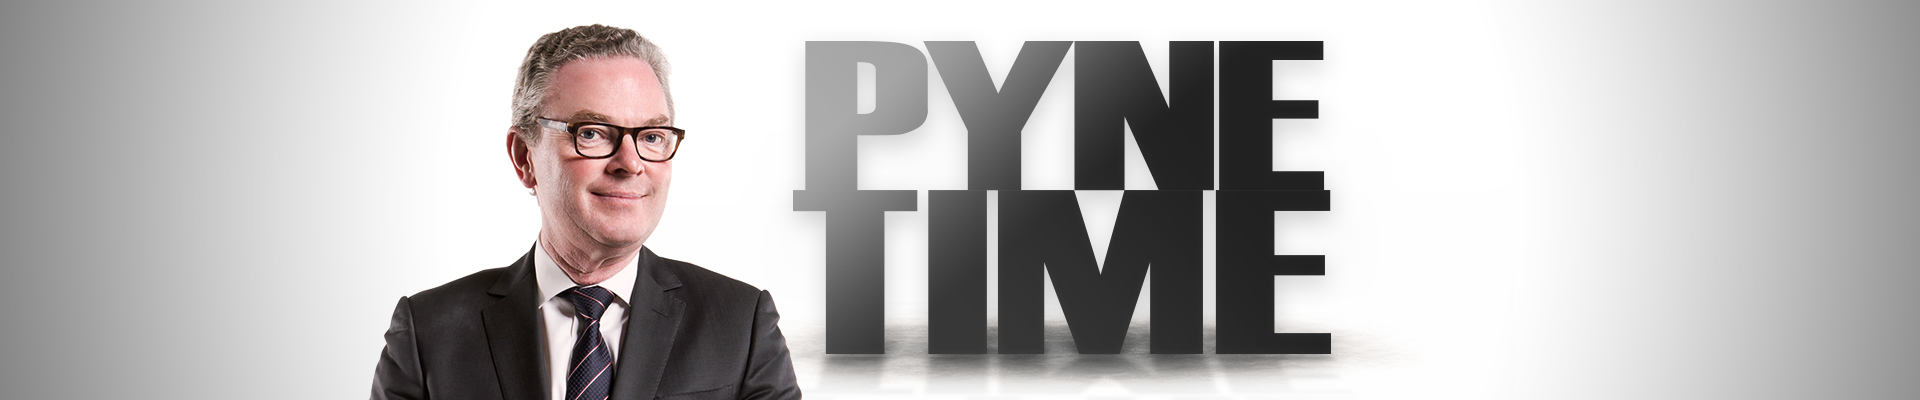 Pyne Time podcast banner image of Christopher Pyne